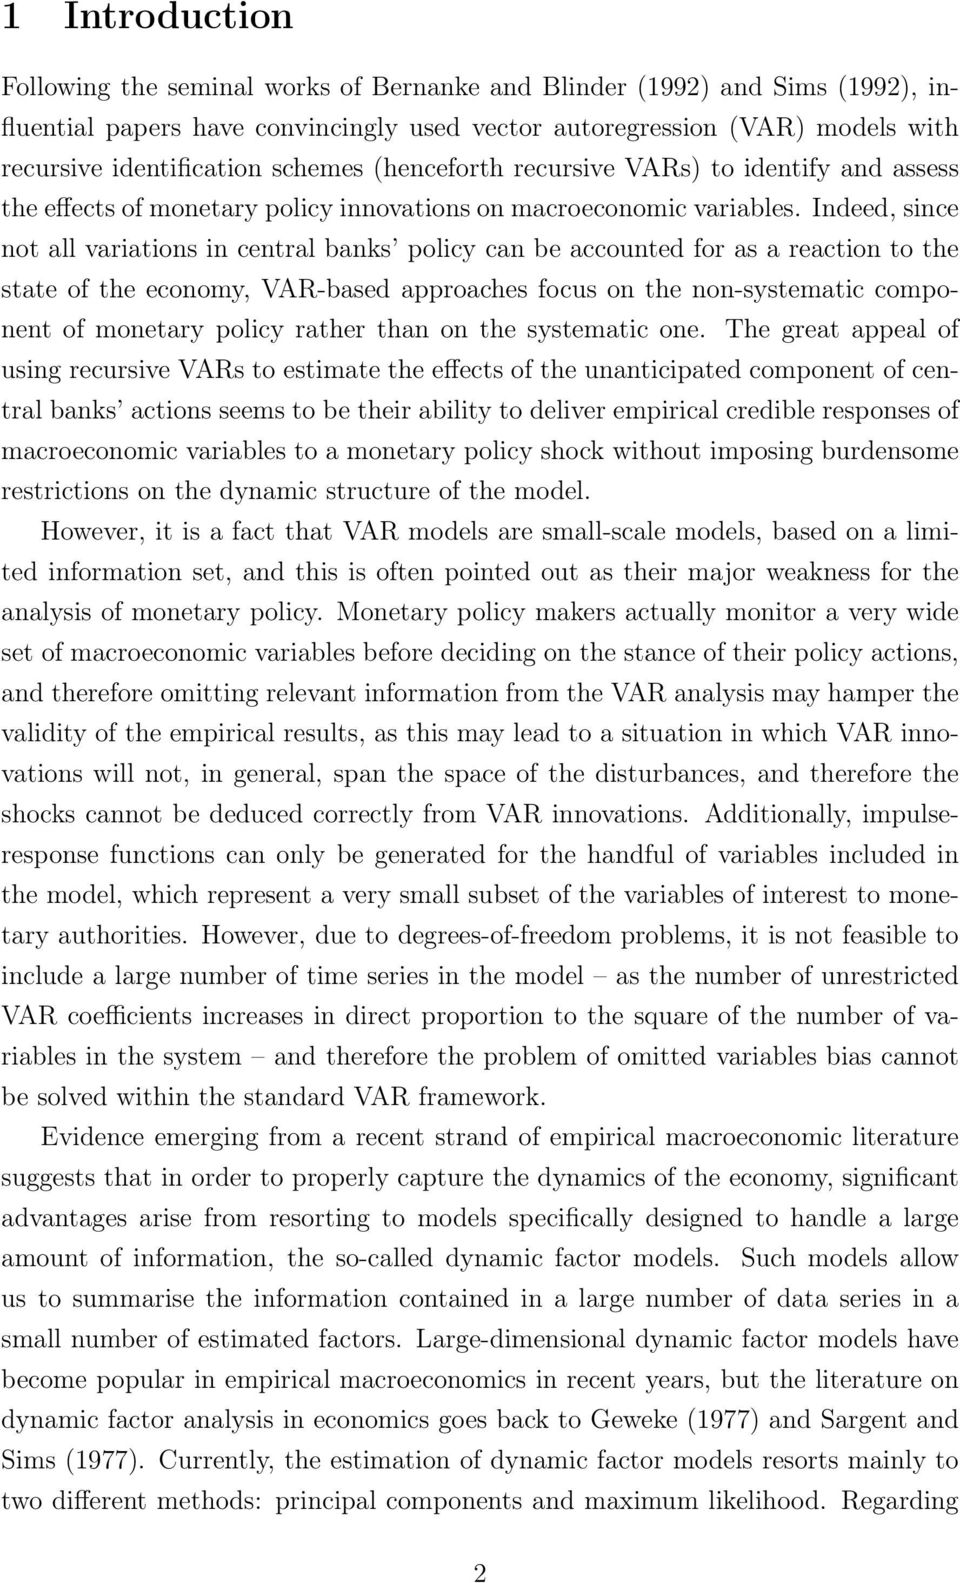 Indeed, since not all variations in central banks policy can be accounted for as a reaction to the state of the economy, VAR-based approaches focus on the non-systematic component of monetary policy